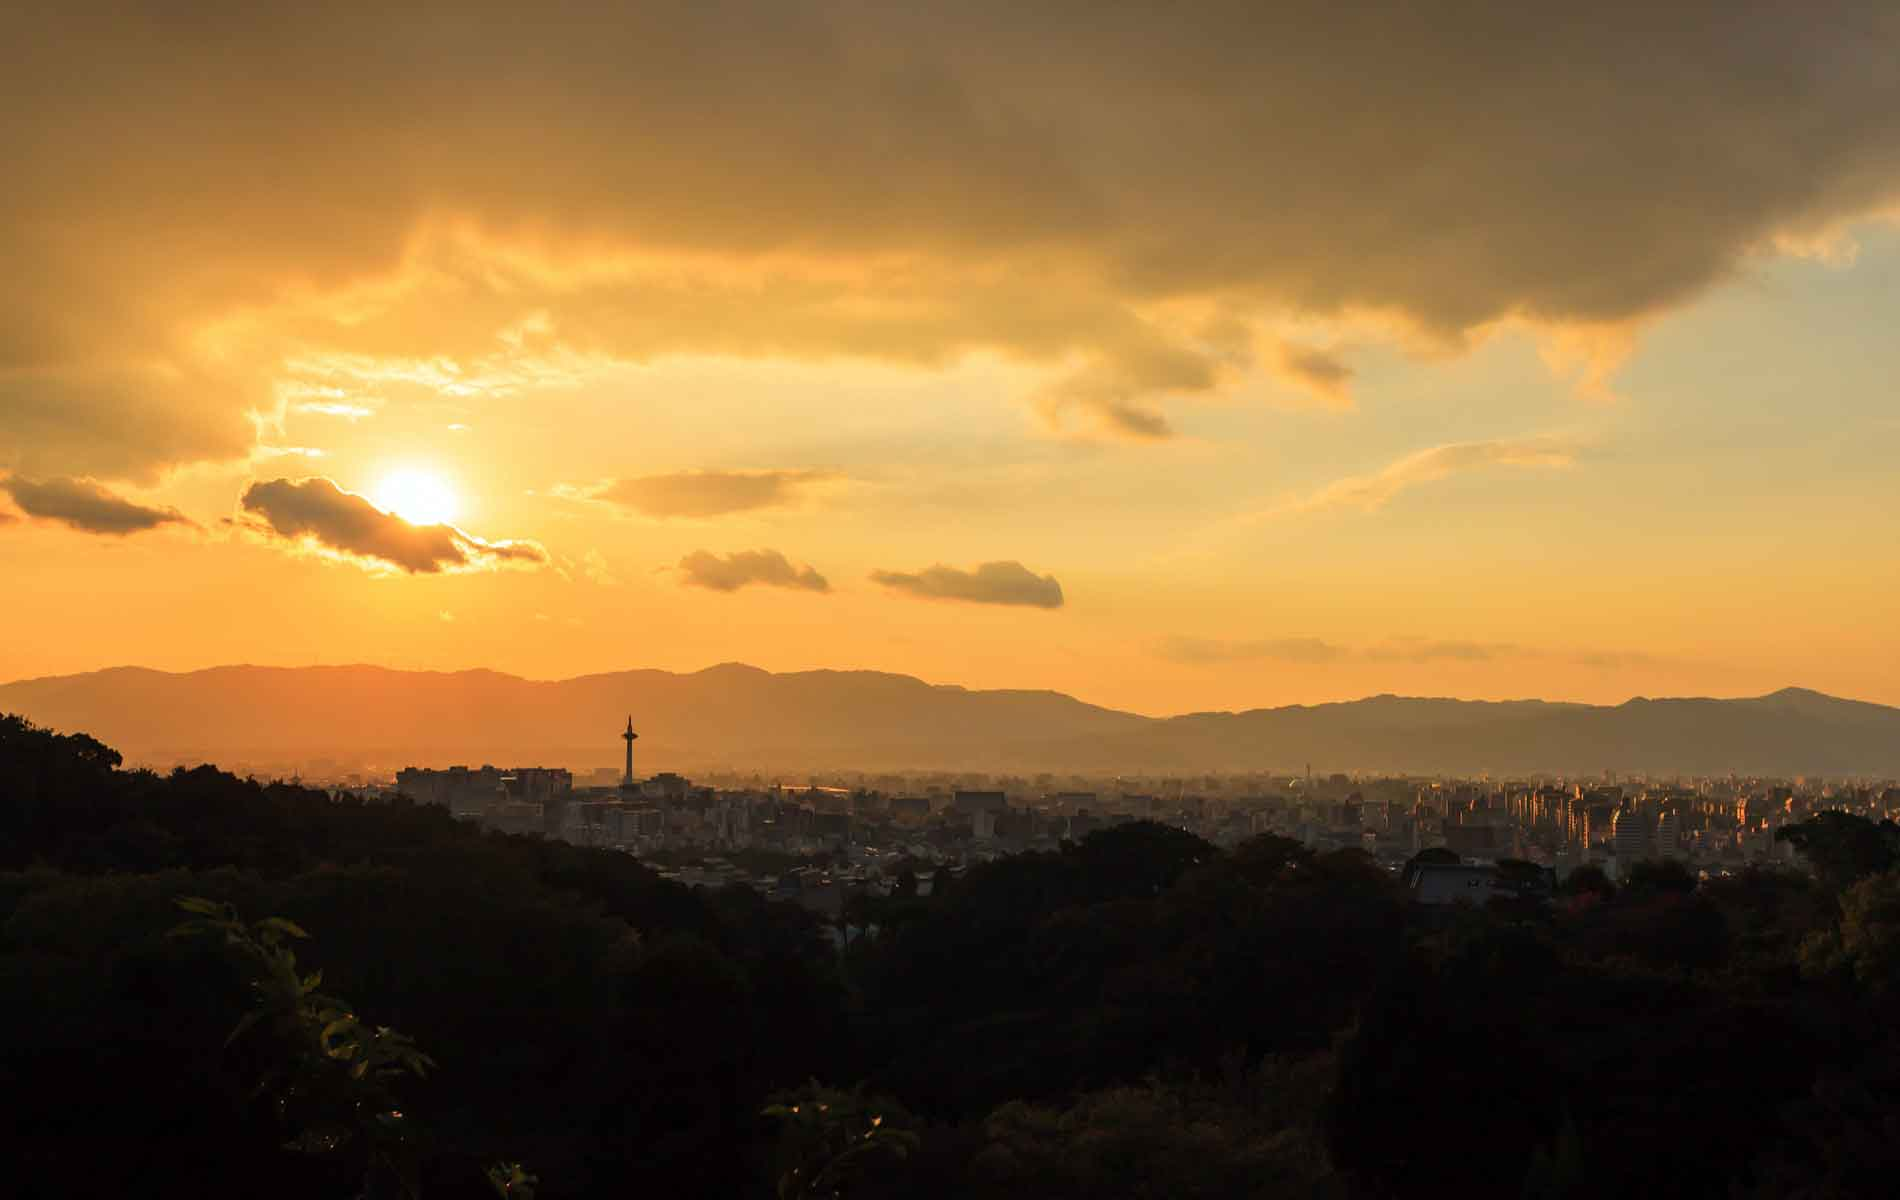 Sunset over Kyoto, Japan